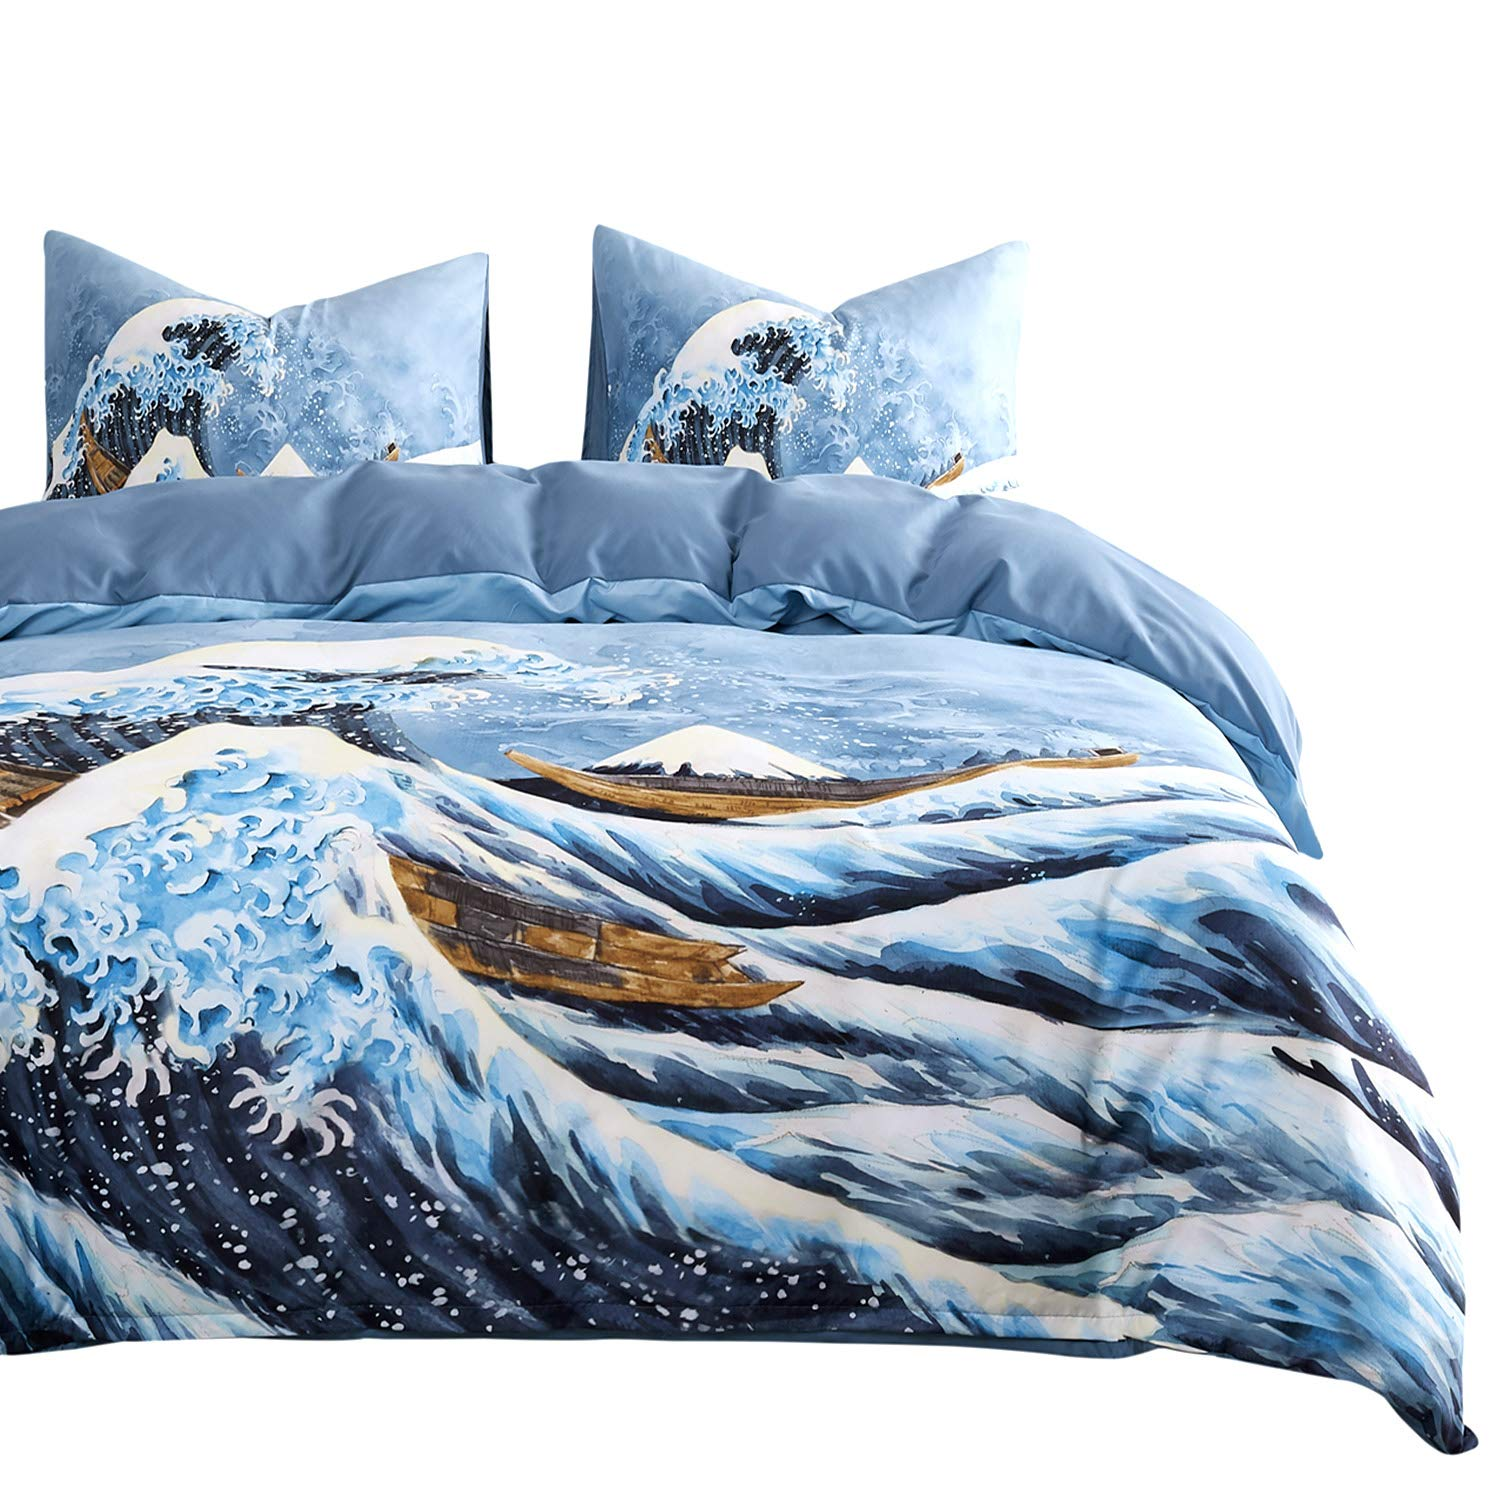 Wake In Cloud - Great Wave Comforter Set, Navy Blue Great Wave Off Kanagawa with Mount Fuji Pattern Printed, Soft Microfiber Bedding (3pcs, Queen Size)